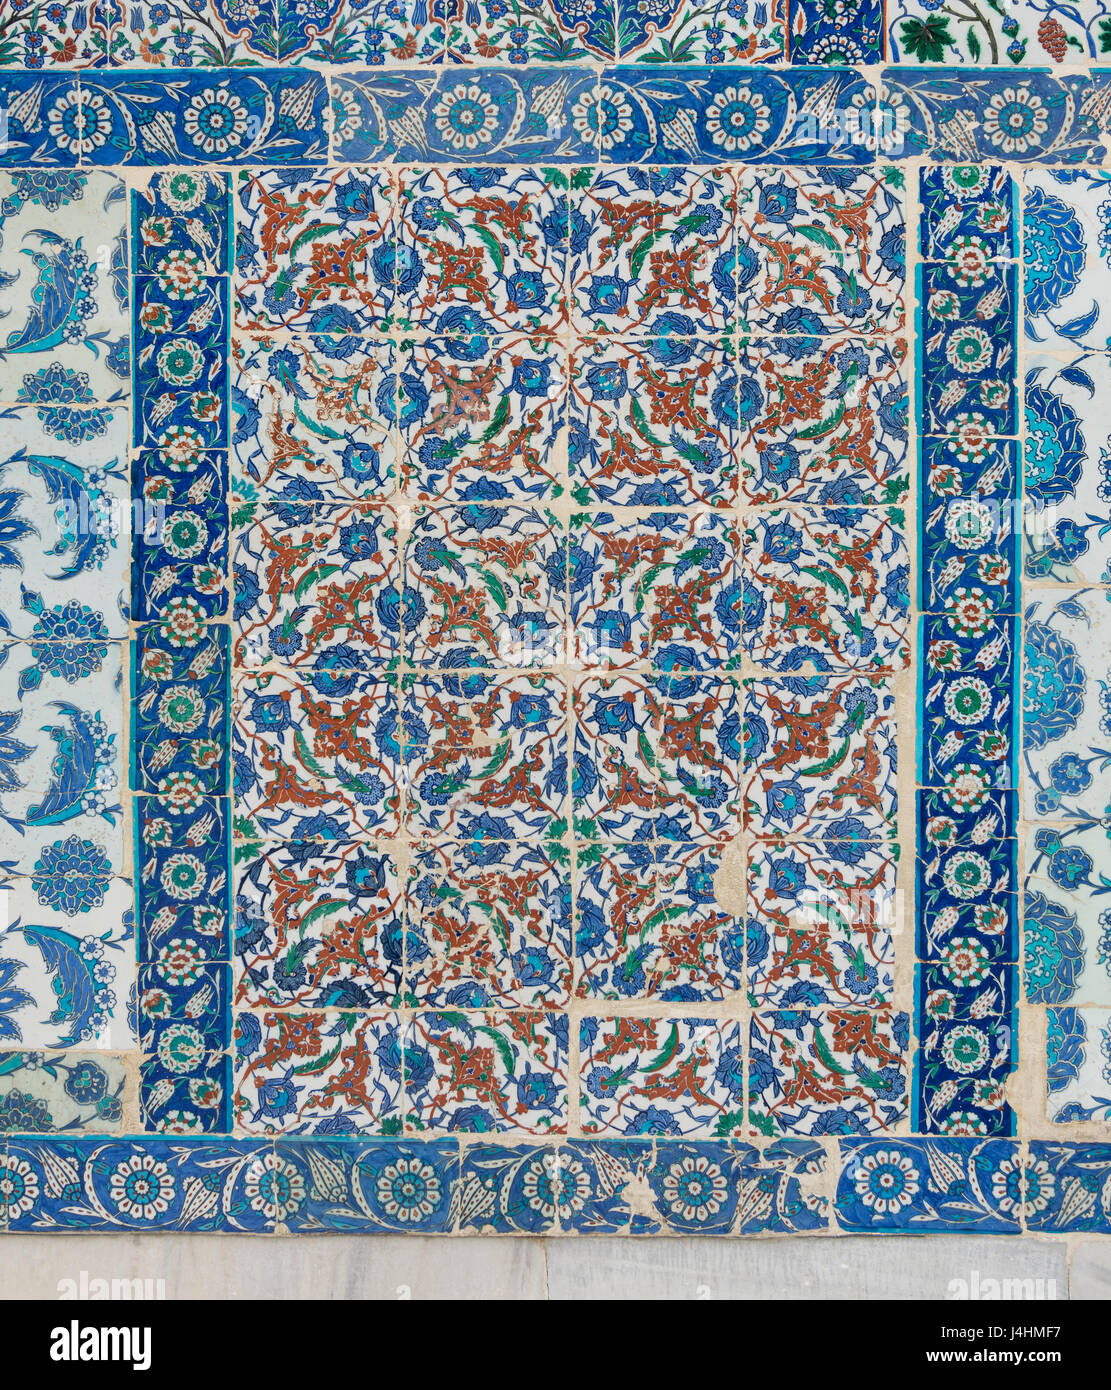 Old ceramic wall tiles with floral blue pattern in an exterior old ceramic wall tiles with floral blue pattern in an exterior wall of the historic eyup sultan mosque situated in the eyup district istanbul turkey doublecrazyfo Image collections